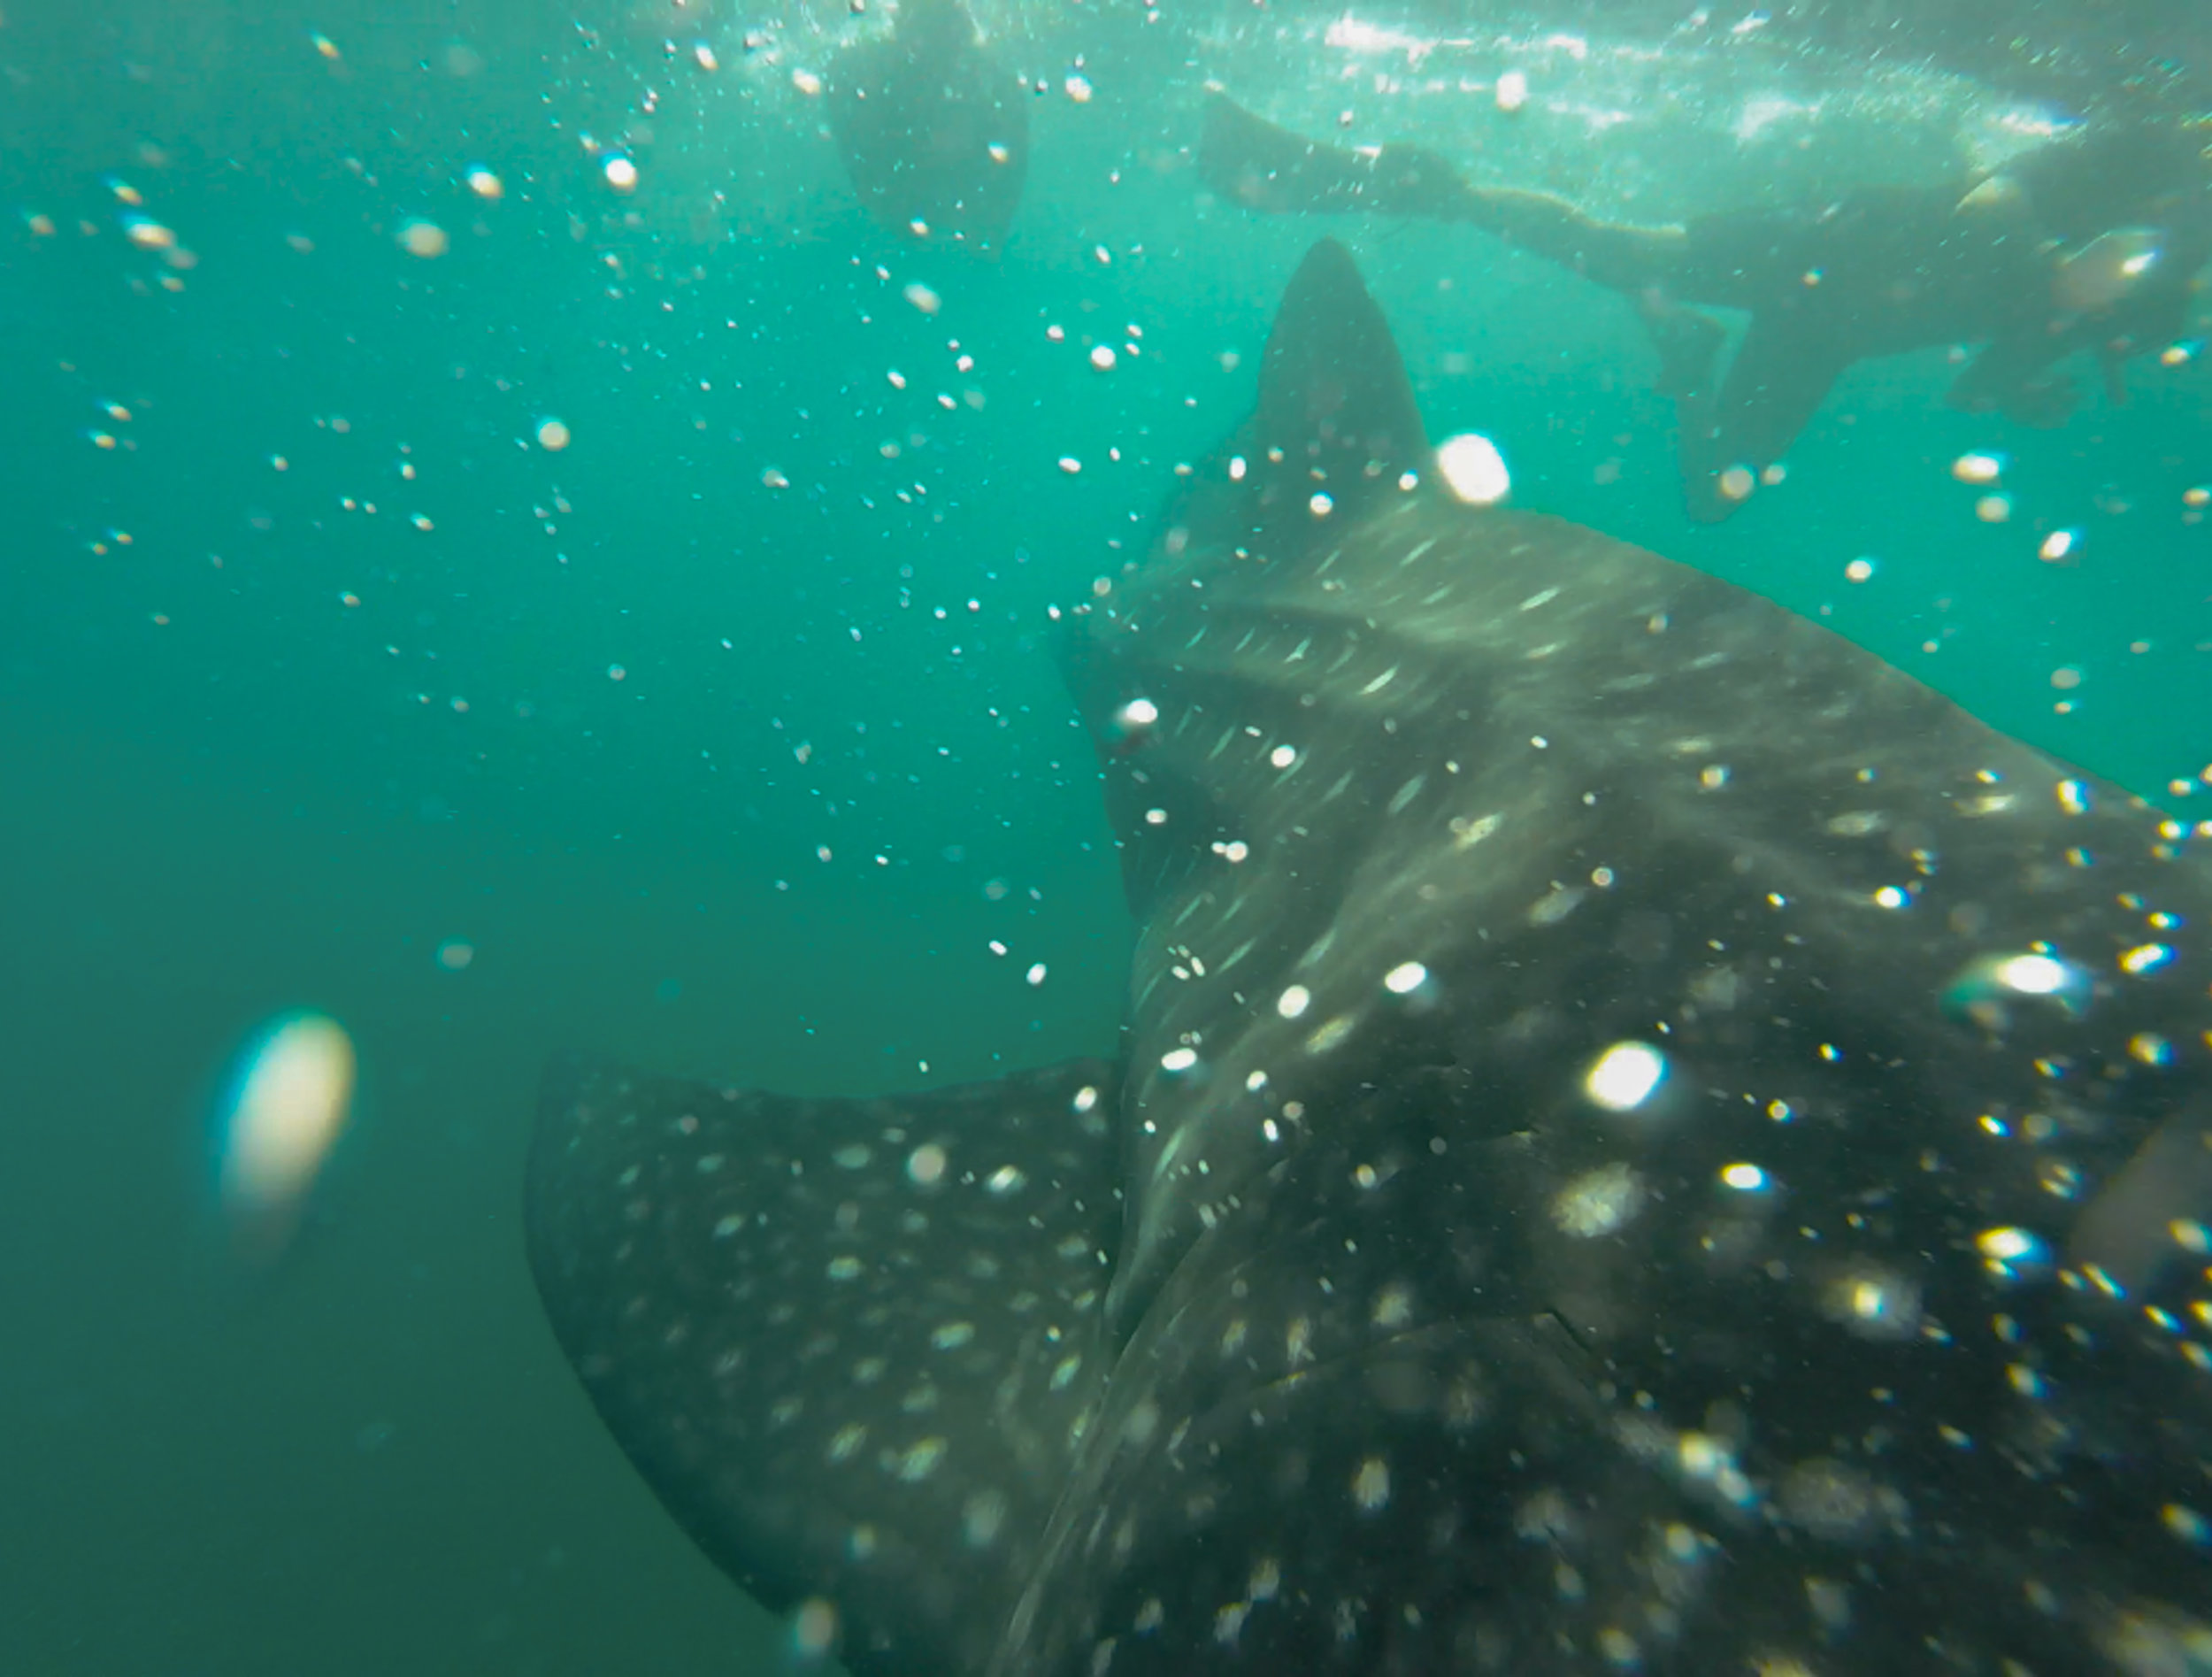 My view as a 6m shark barges through.